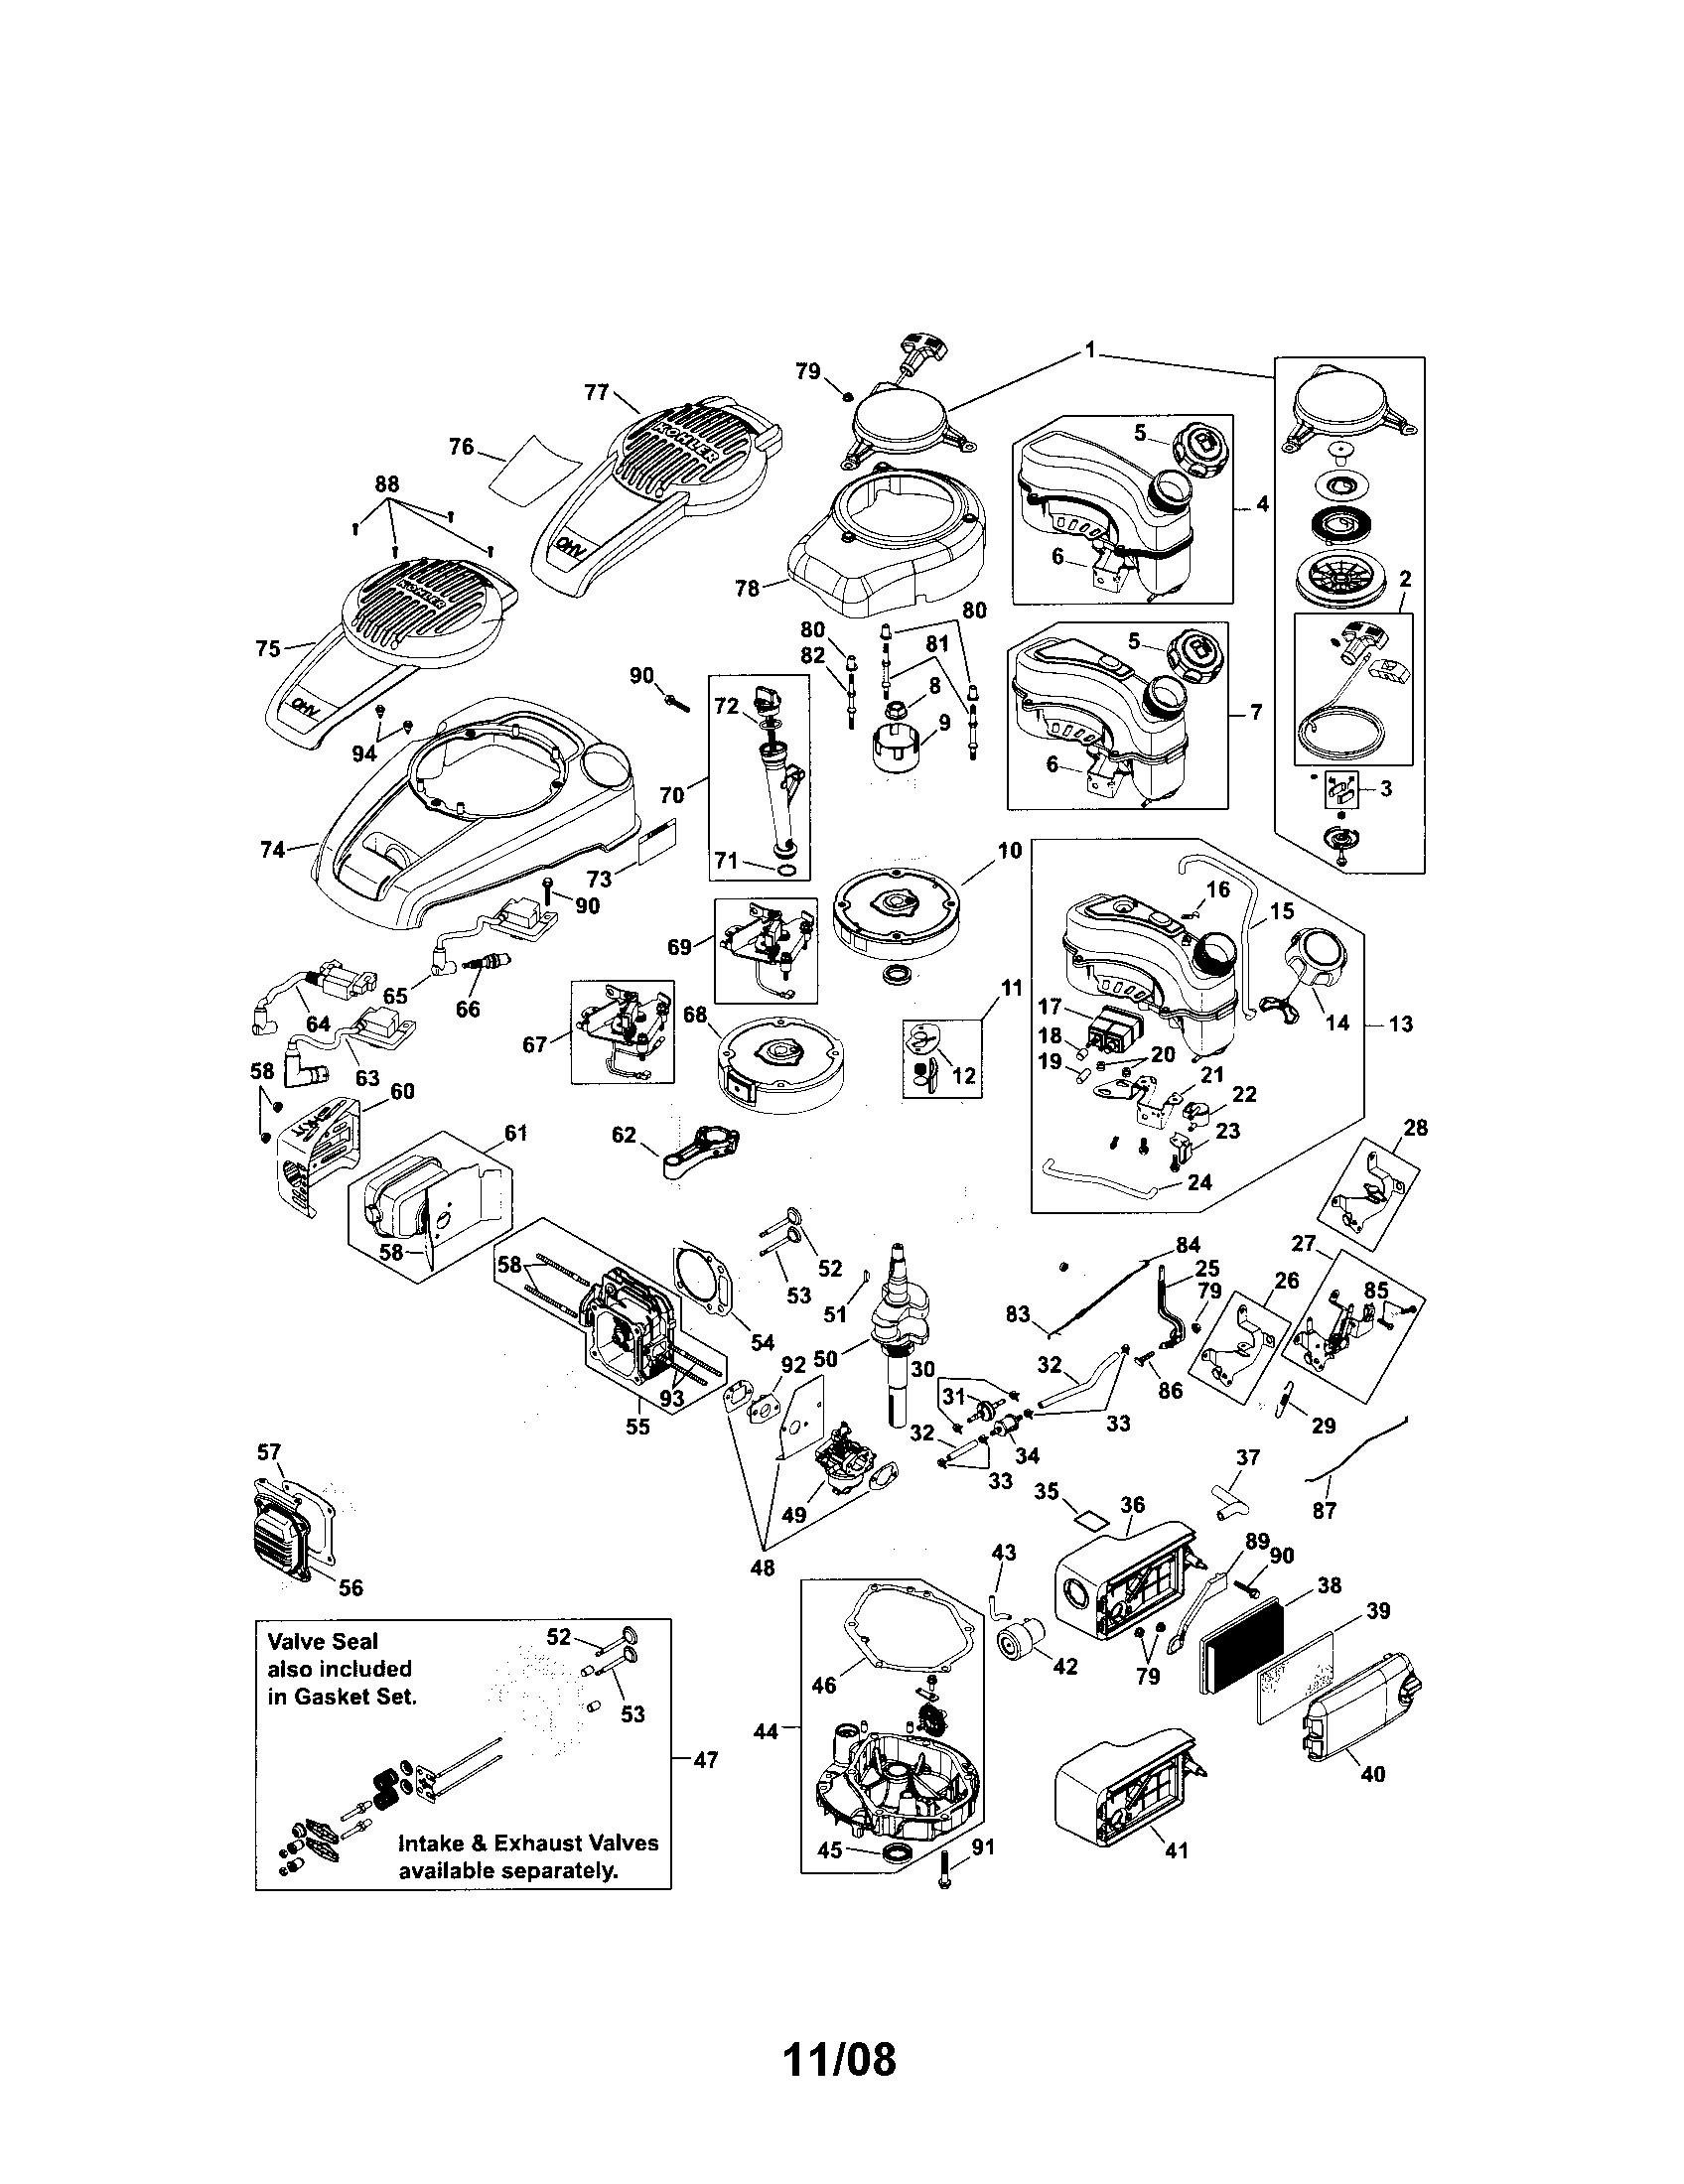 Kohler K301 Engine Diagram Basic Wiring For All Garden Tractor Chart Gallery Of